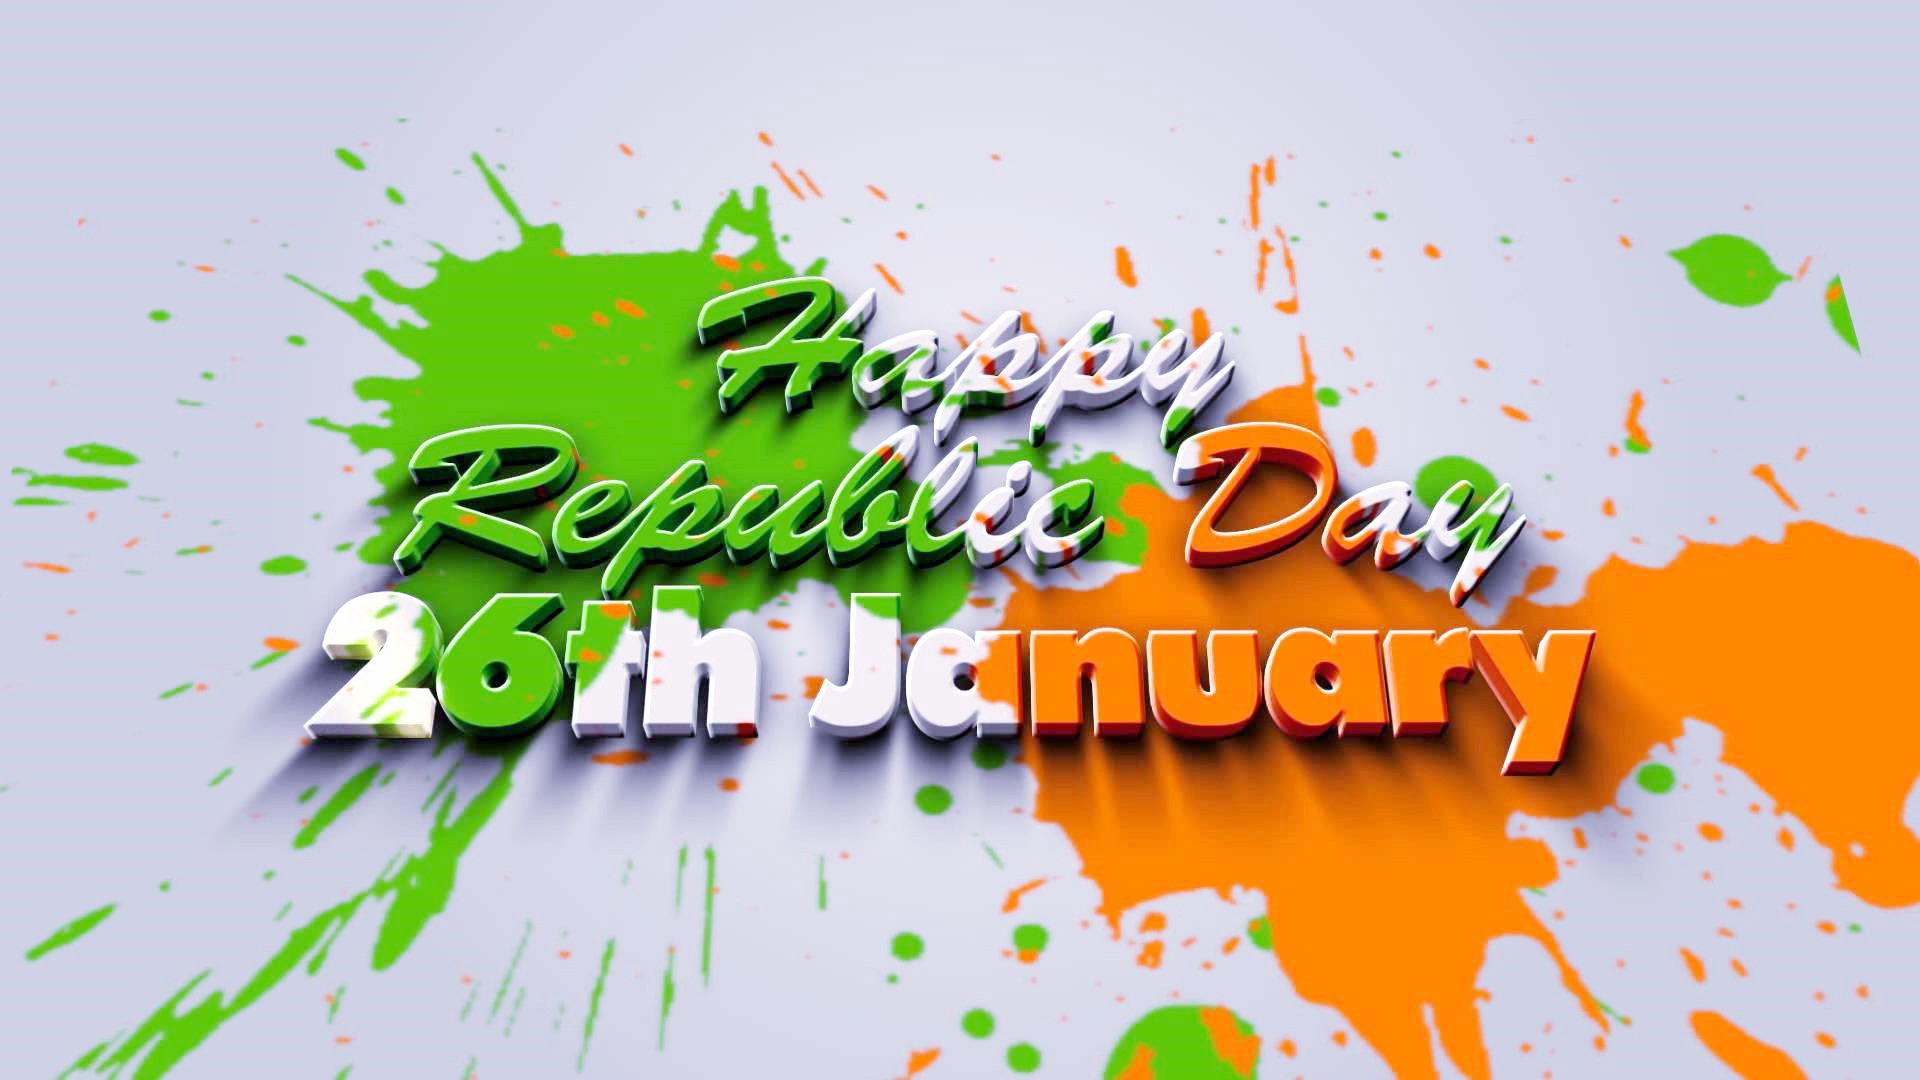 66-th-Republic-day_s7dlzm